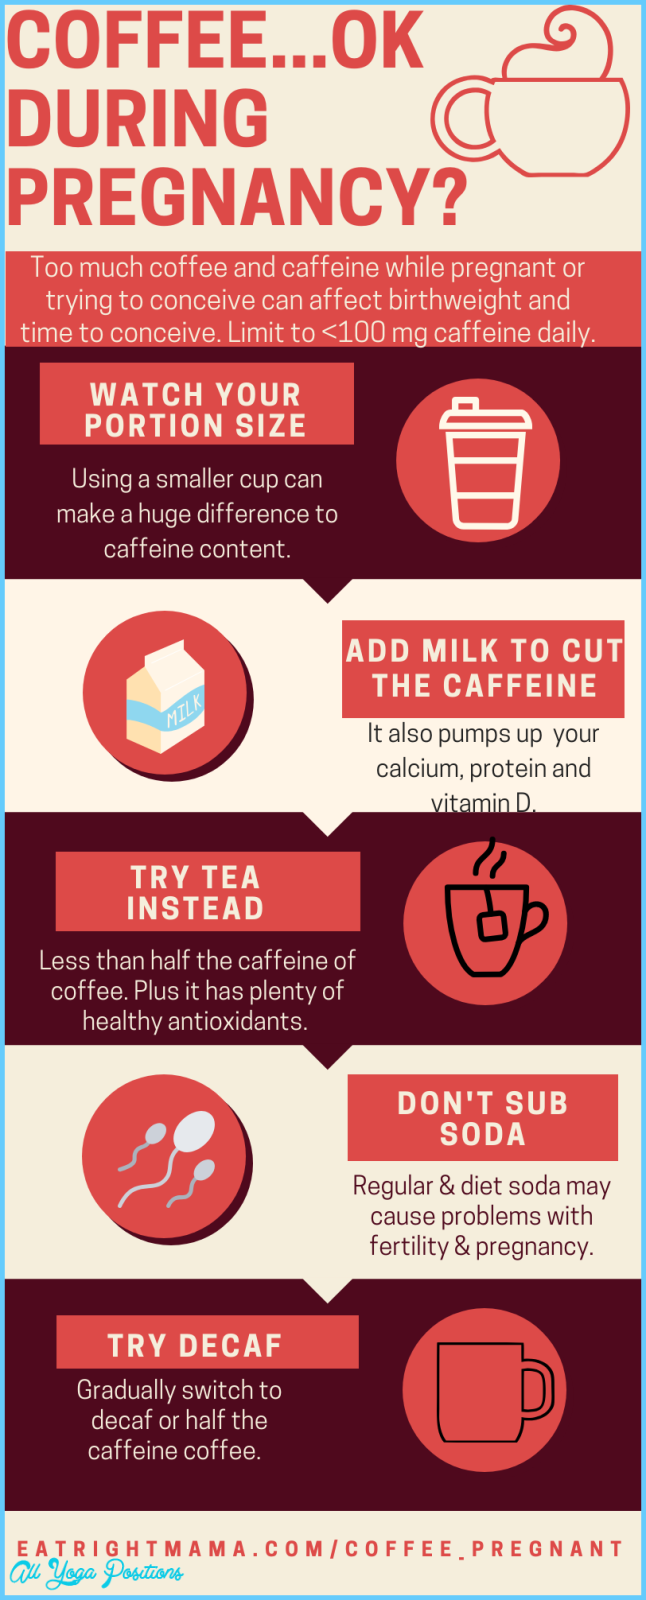 Should You Drink Coffee While Pregnant?